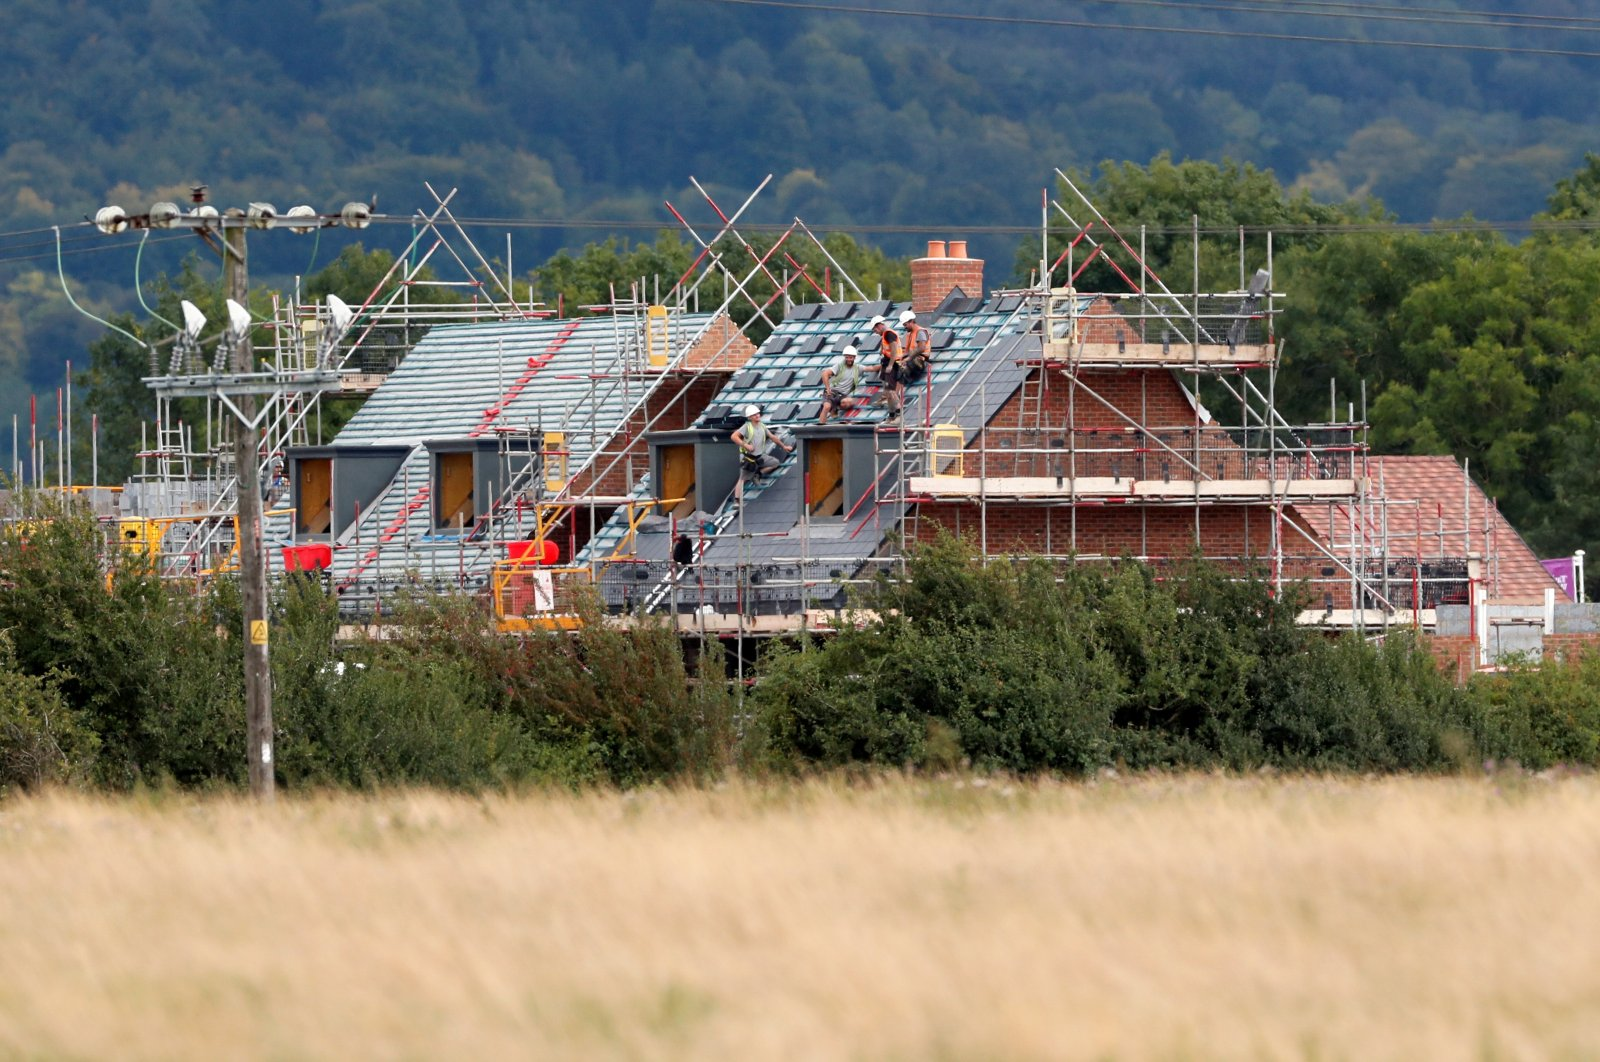 Construction workers build a new house in Aylesbury, Britain, Aug. 6, 2020. (Reuters Photo)